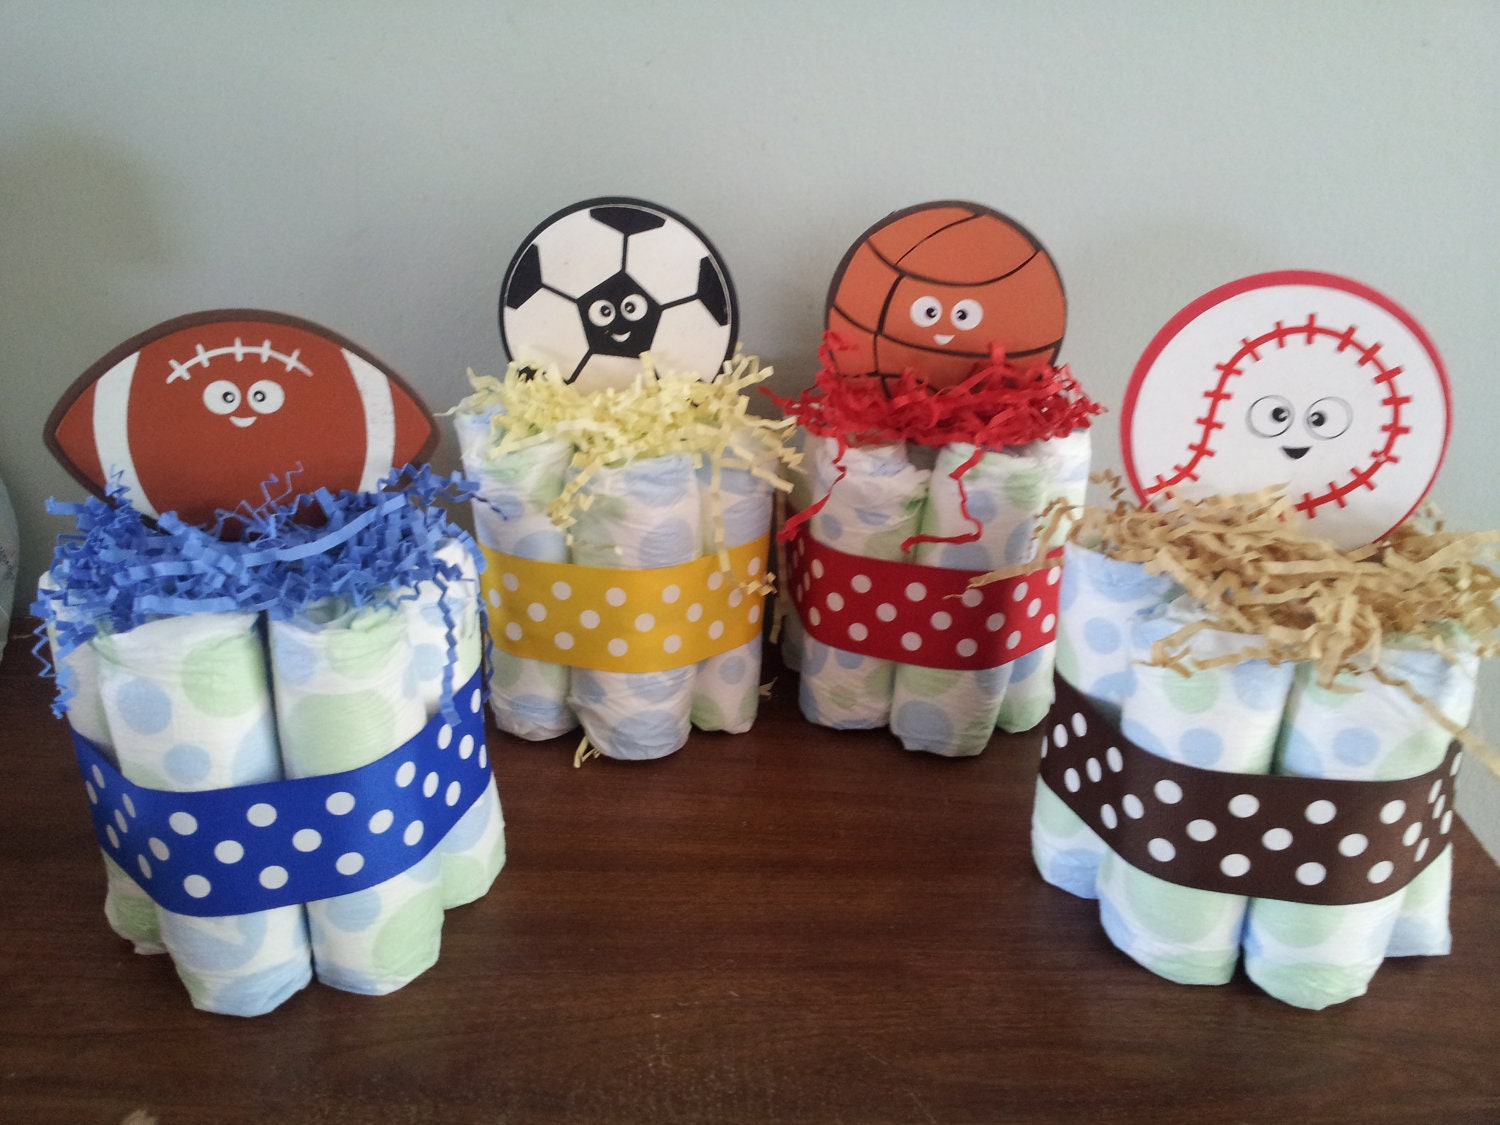 Diaper Cake Centerpiece For Baby Shower : 1 SPORTS theme mini diaper cake baby shower centerpiece